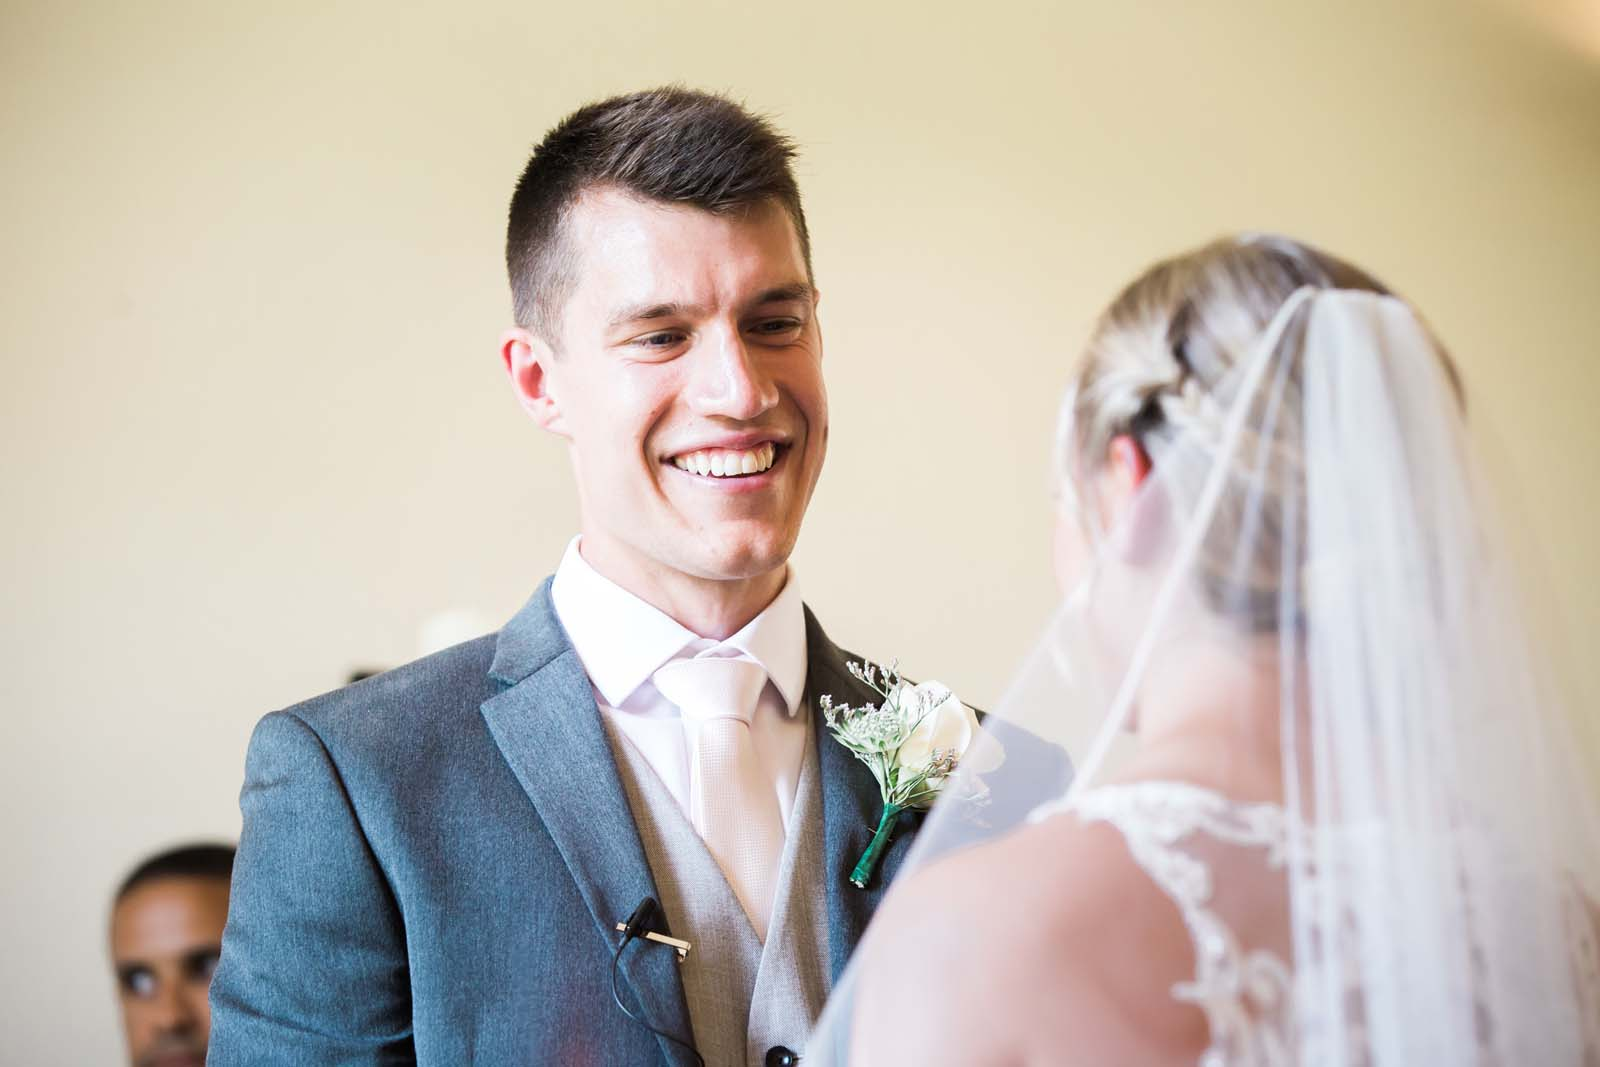 Notley Abbey wedding in Buckinghamshire handsome groom smile lovingly at his bride